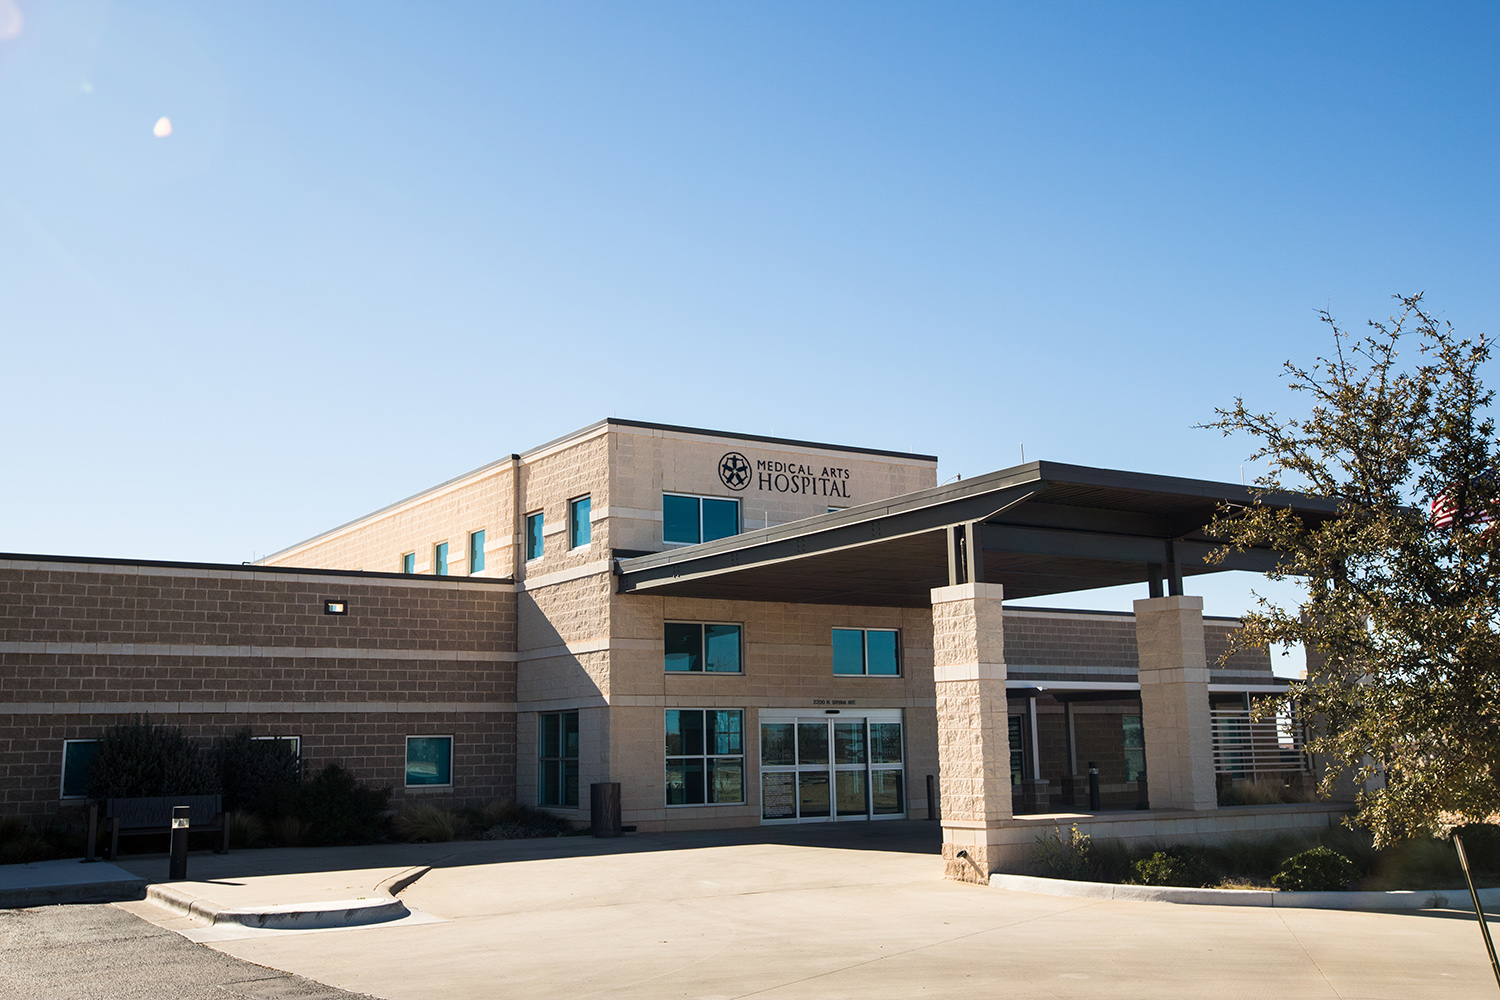 Medical Arts Hospital in Lamesa. The hospital board's decision to shut down the labor and delivery unit has left area residents without a local facility that provides birthing services.